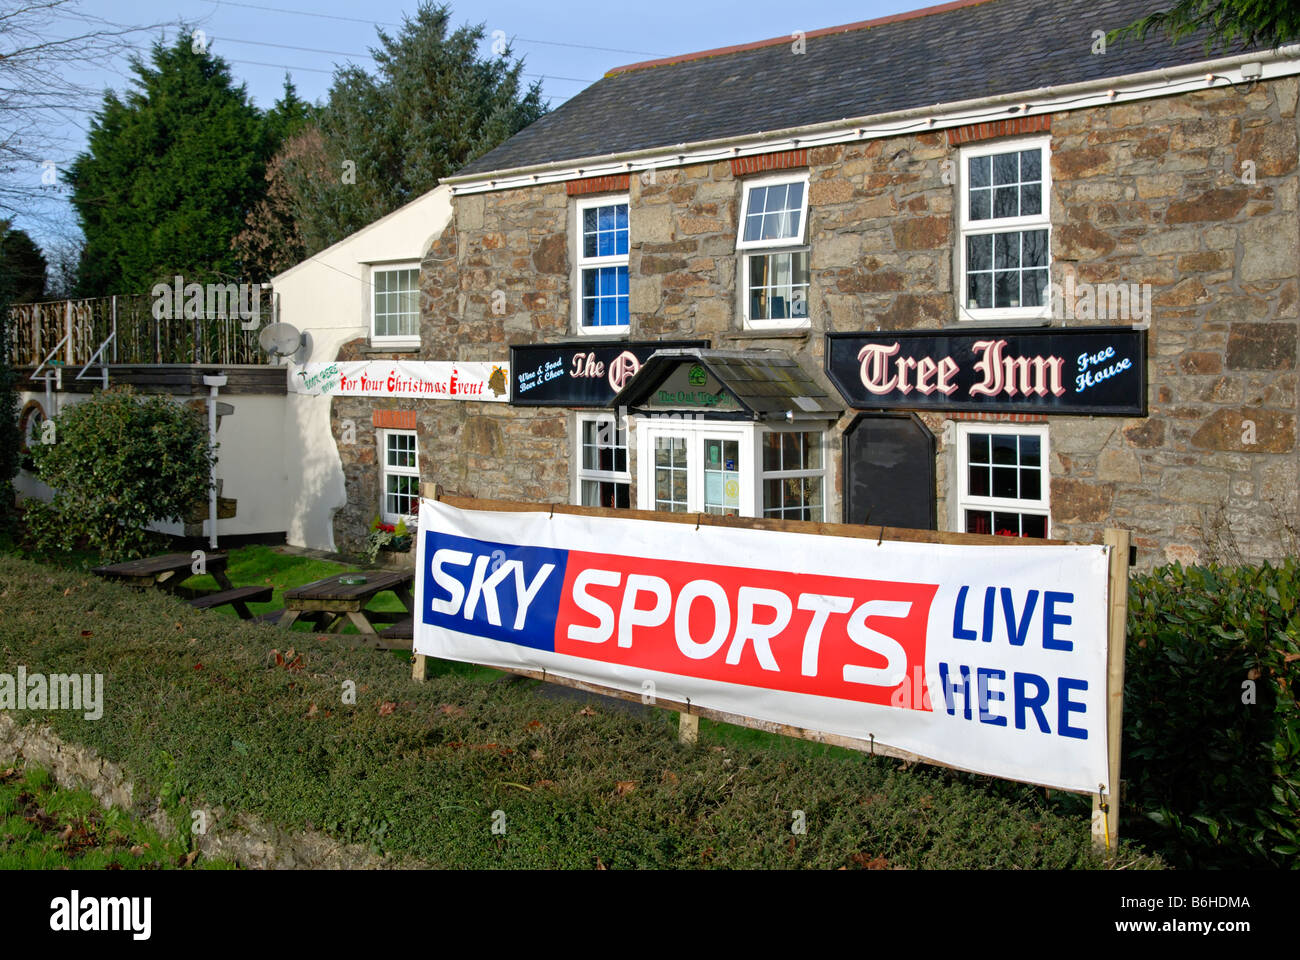 a banner outside a country pub in cornwall,uk advertising 'sky sports' - Stock Image